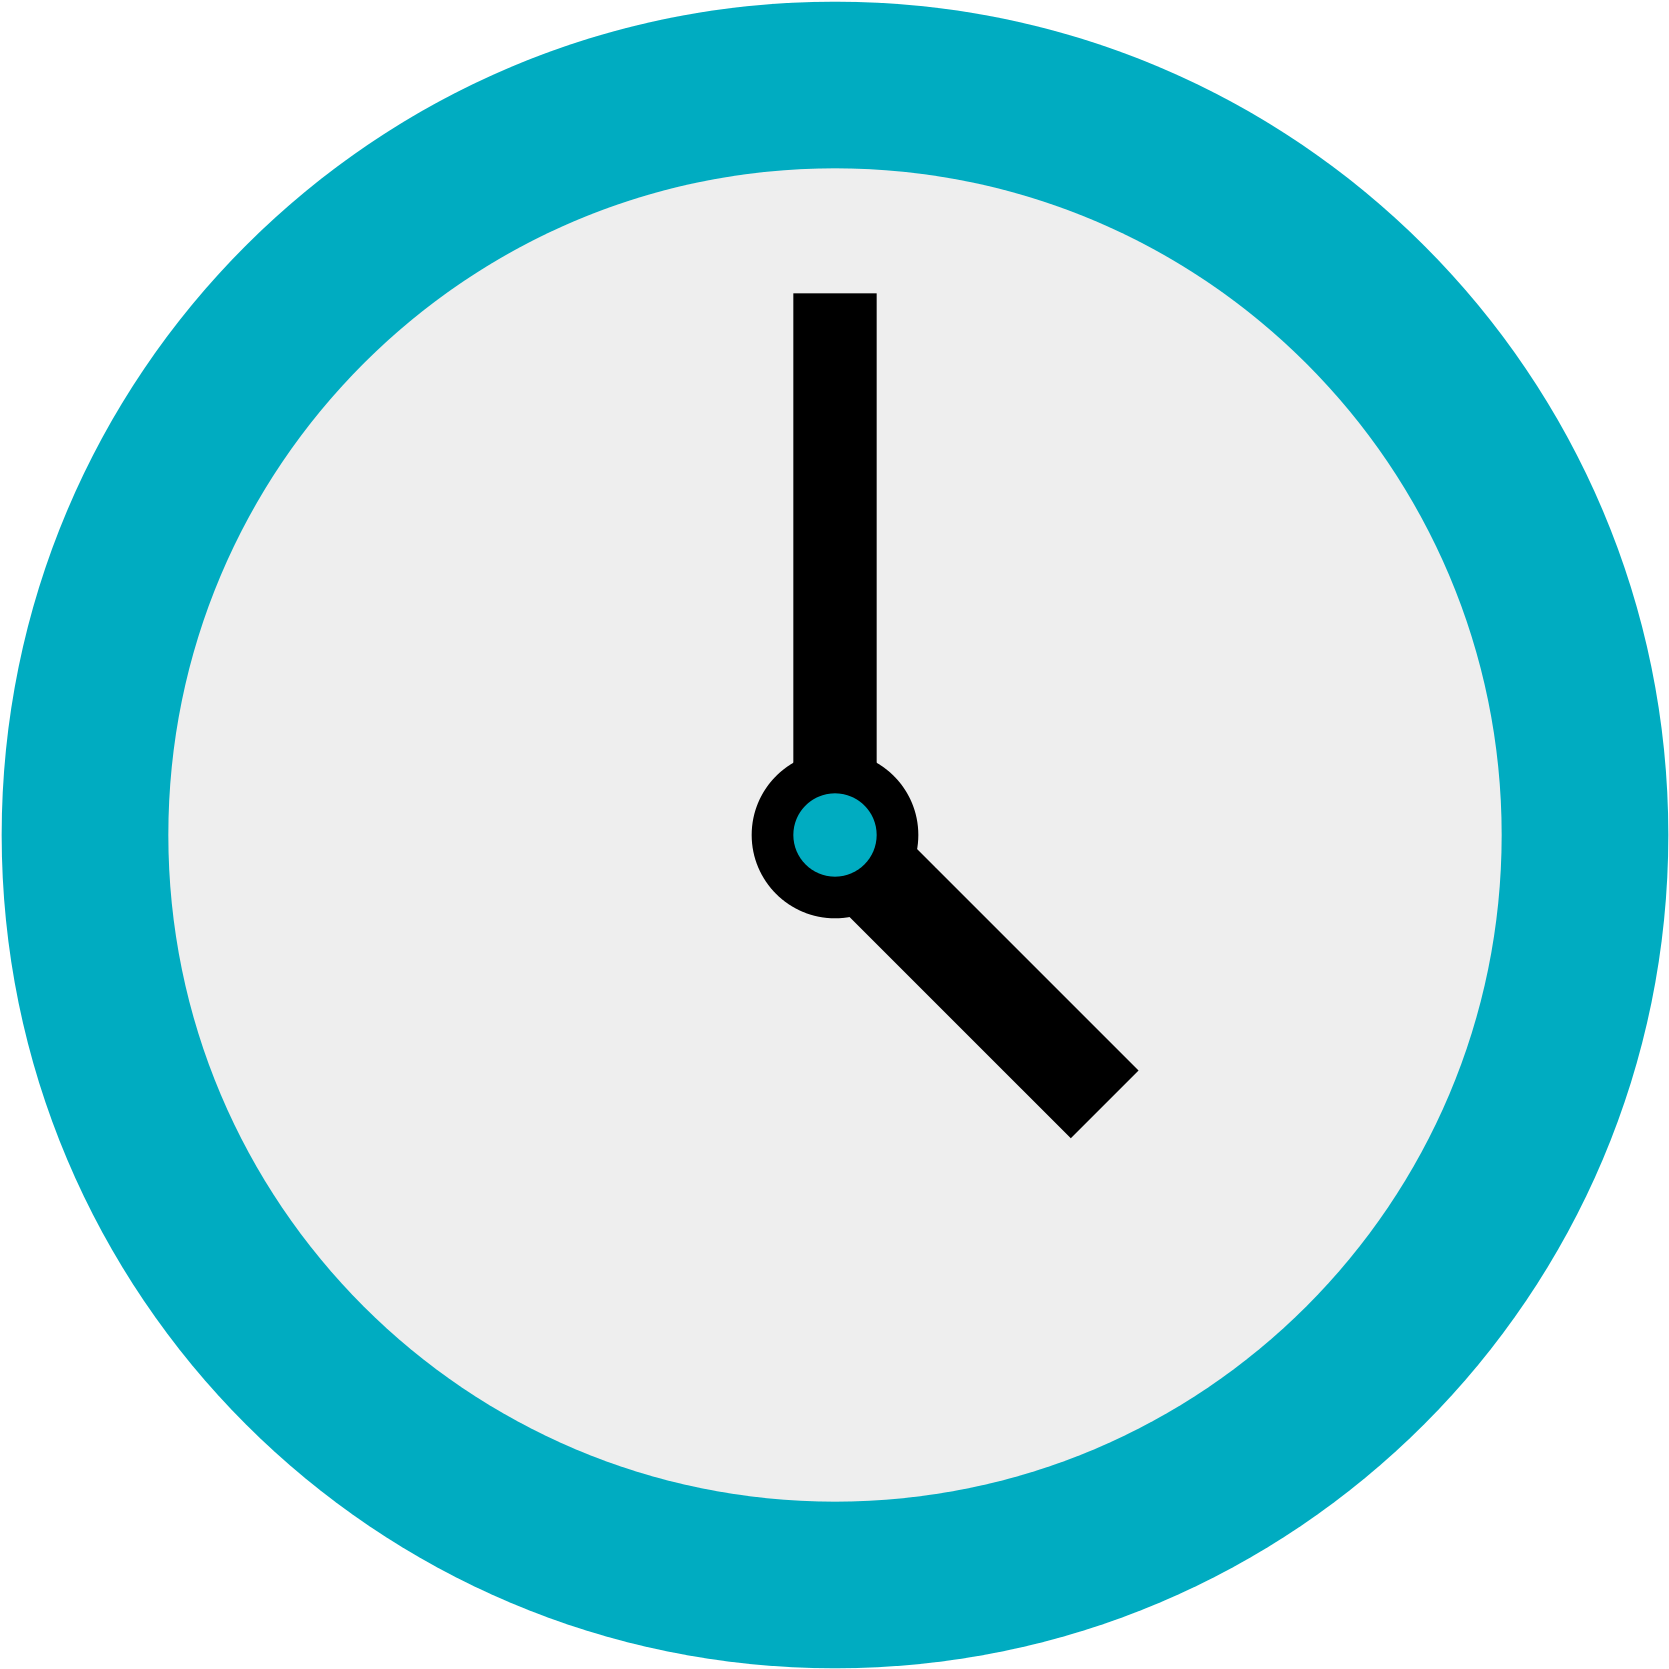 Clock İcon Png - Flat Clock Icon Png - Clock Icon, Transparent Png - Large Size Png ...